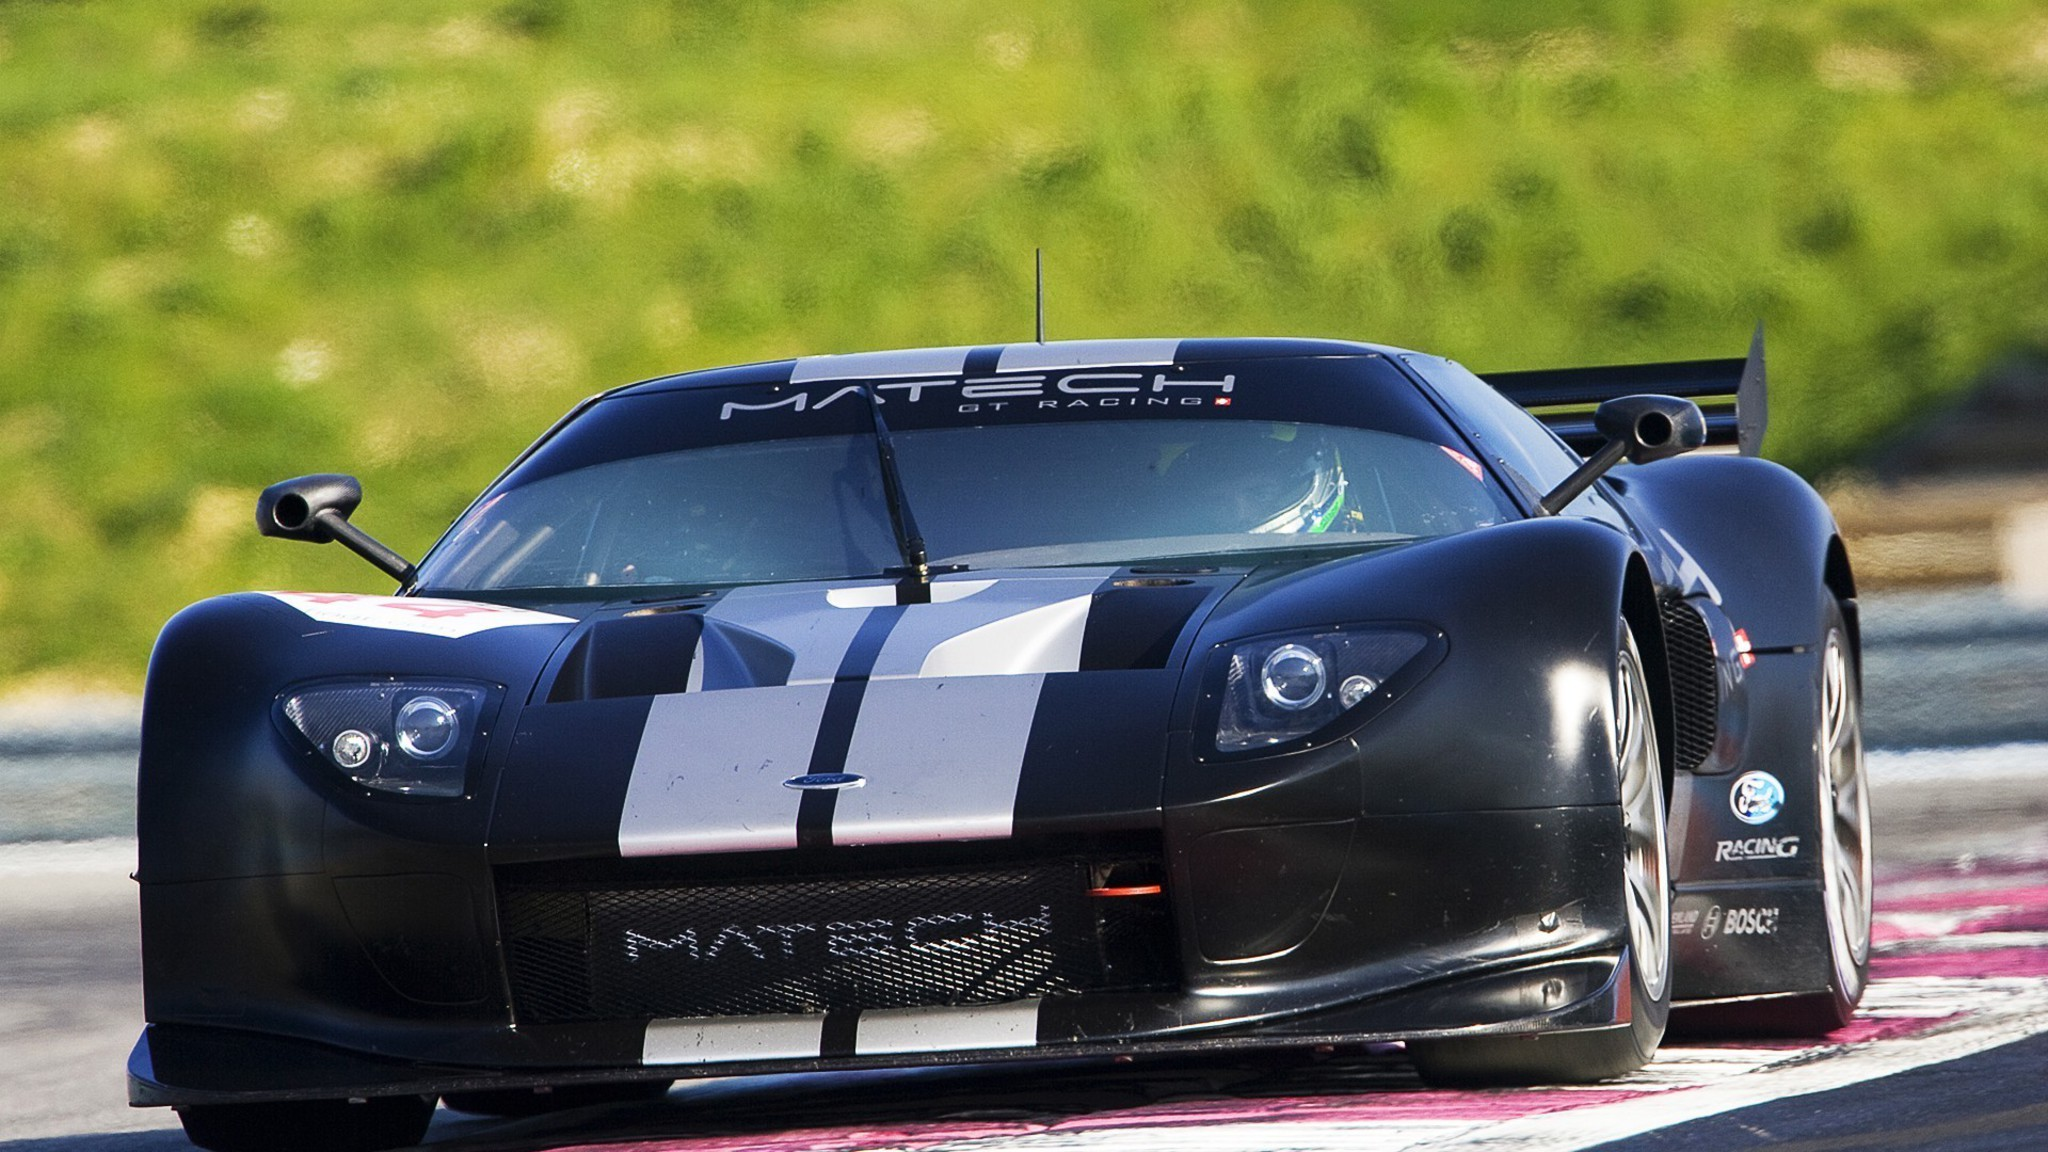 Luxury Vehicle: Ford Gt Racing Matech Automobiles Cars Wallpaper